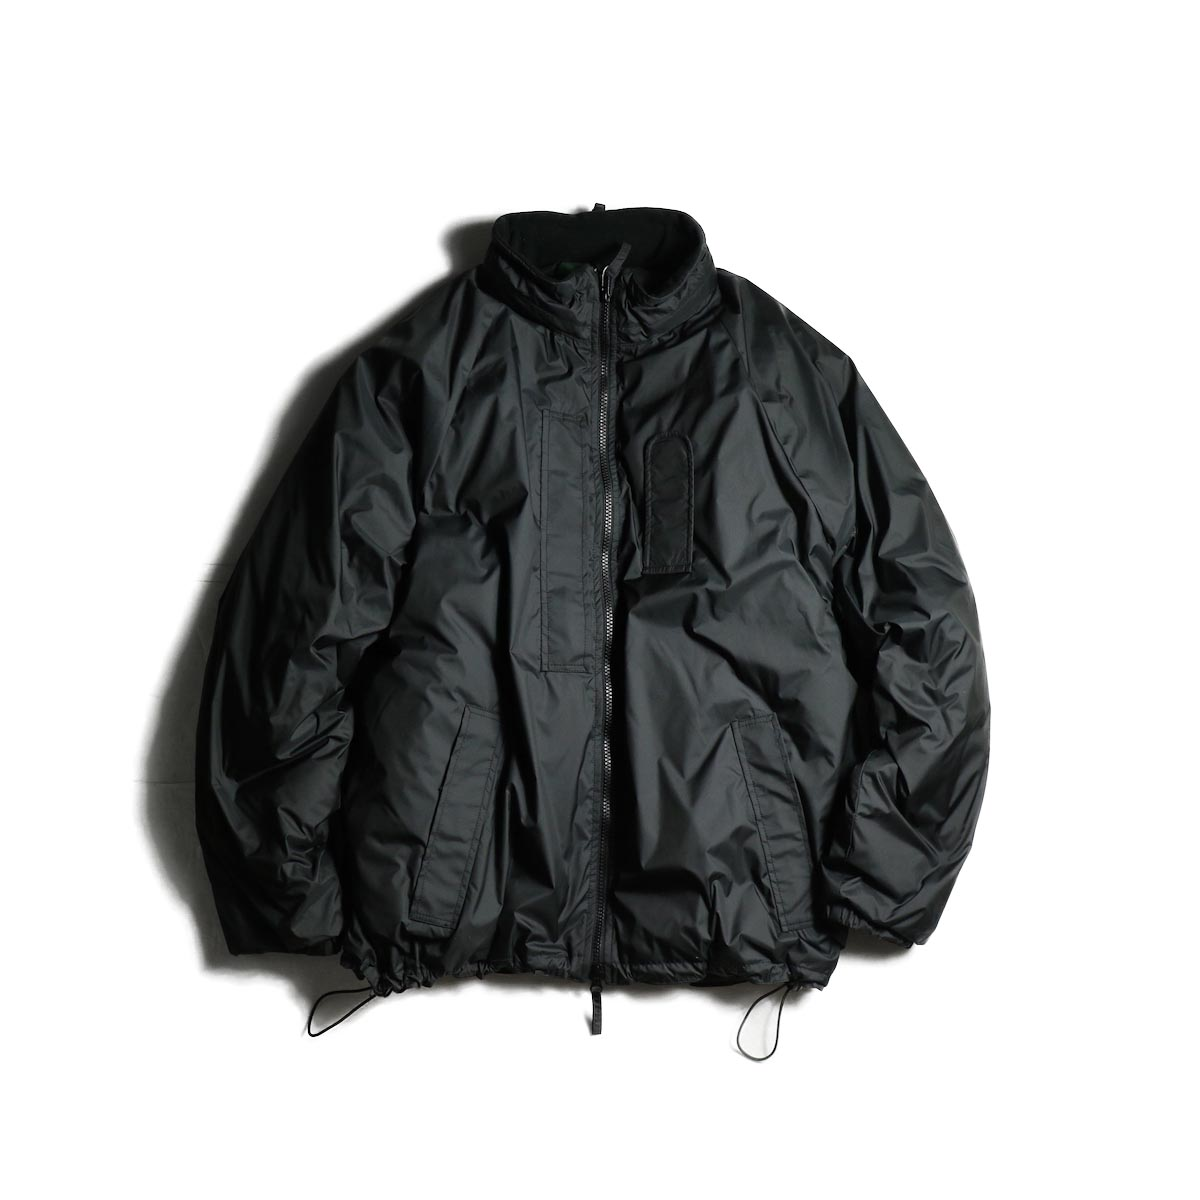 J&S Franklin / BRITISH ARMY PCS LIGHT WEIGHT DOWN JACKET (Black) 正面